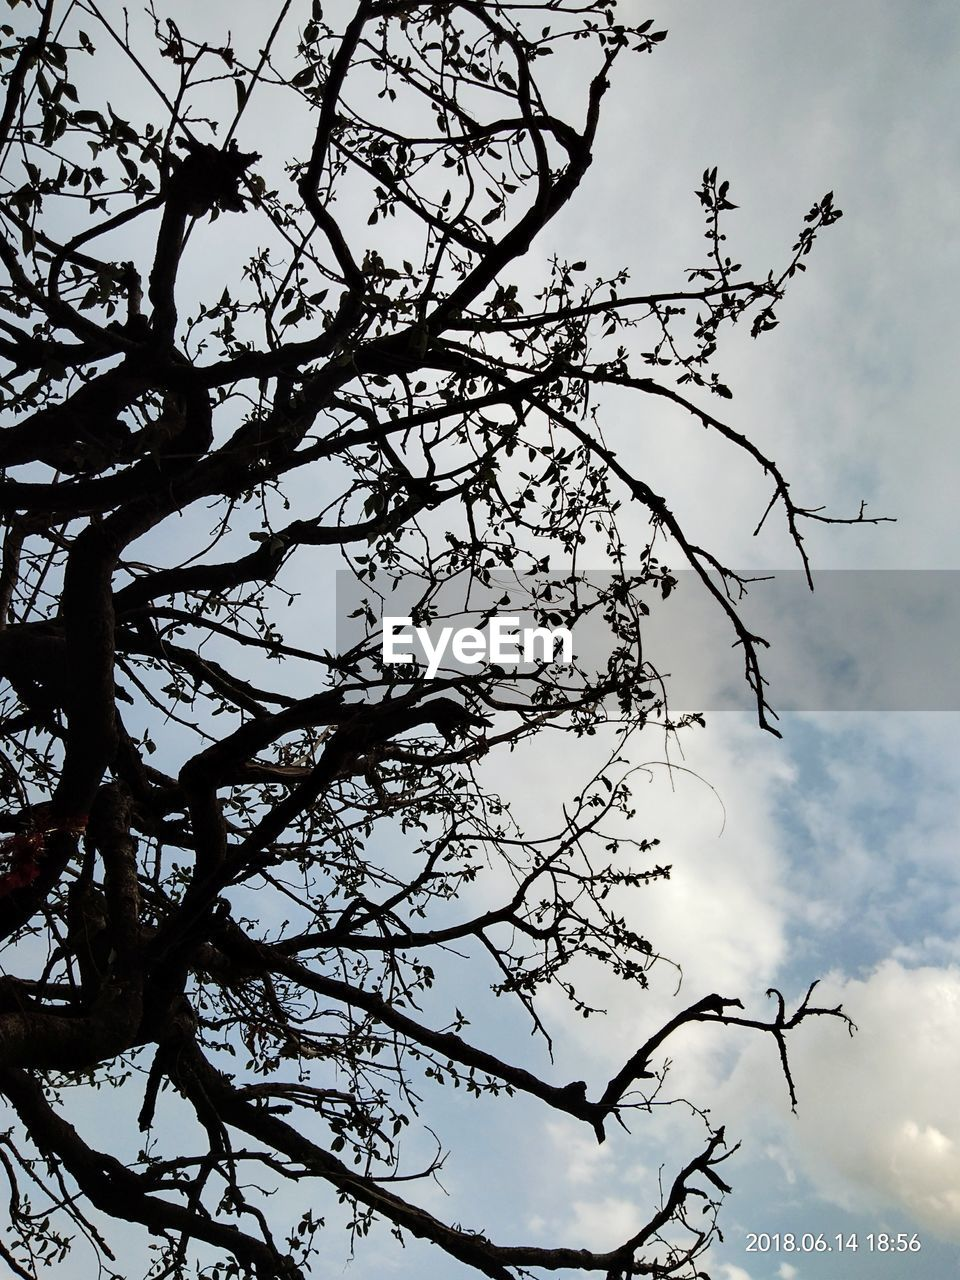 tree, sky, low angle view, plant, branch, cloud - sky, nature, beauty in nature, no people, growth, silhouette, day, outdoors, tranquility, flower, flowering plant, bare tree, springtime, blossom